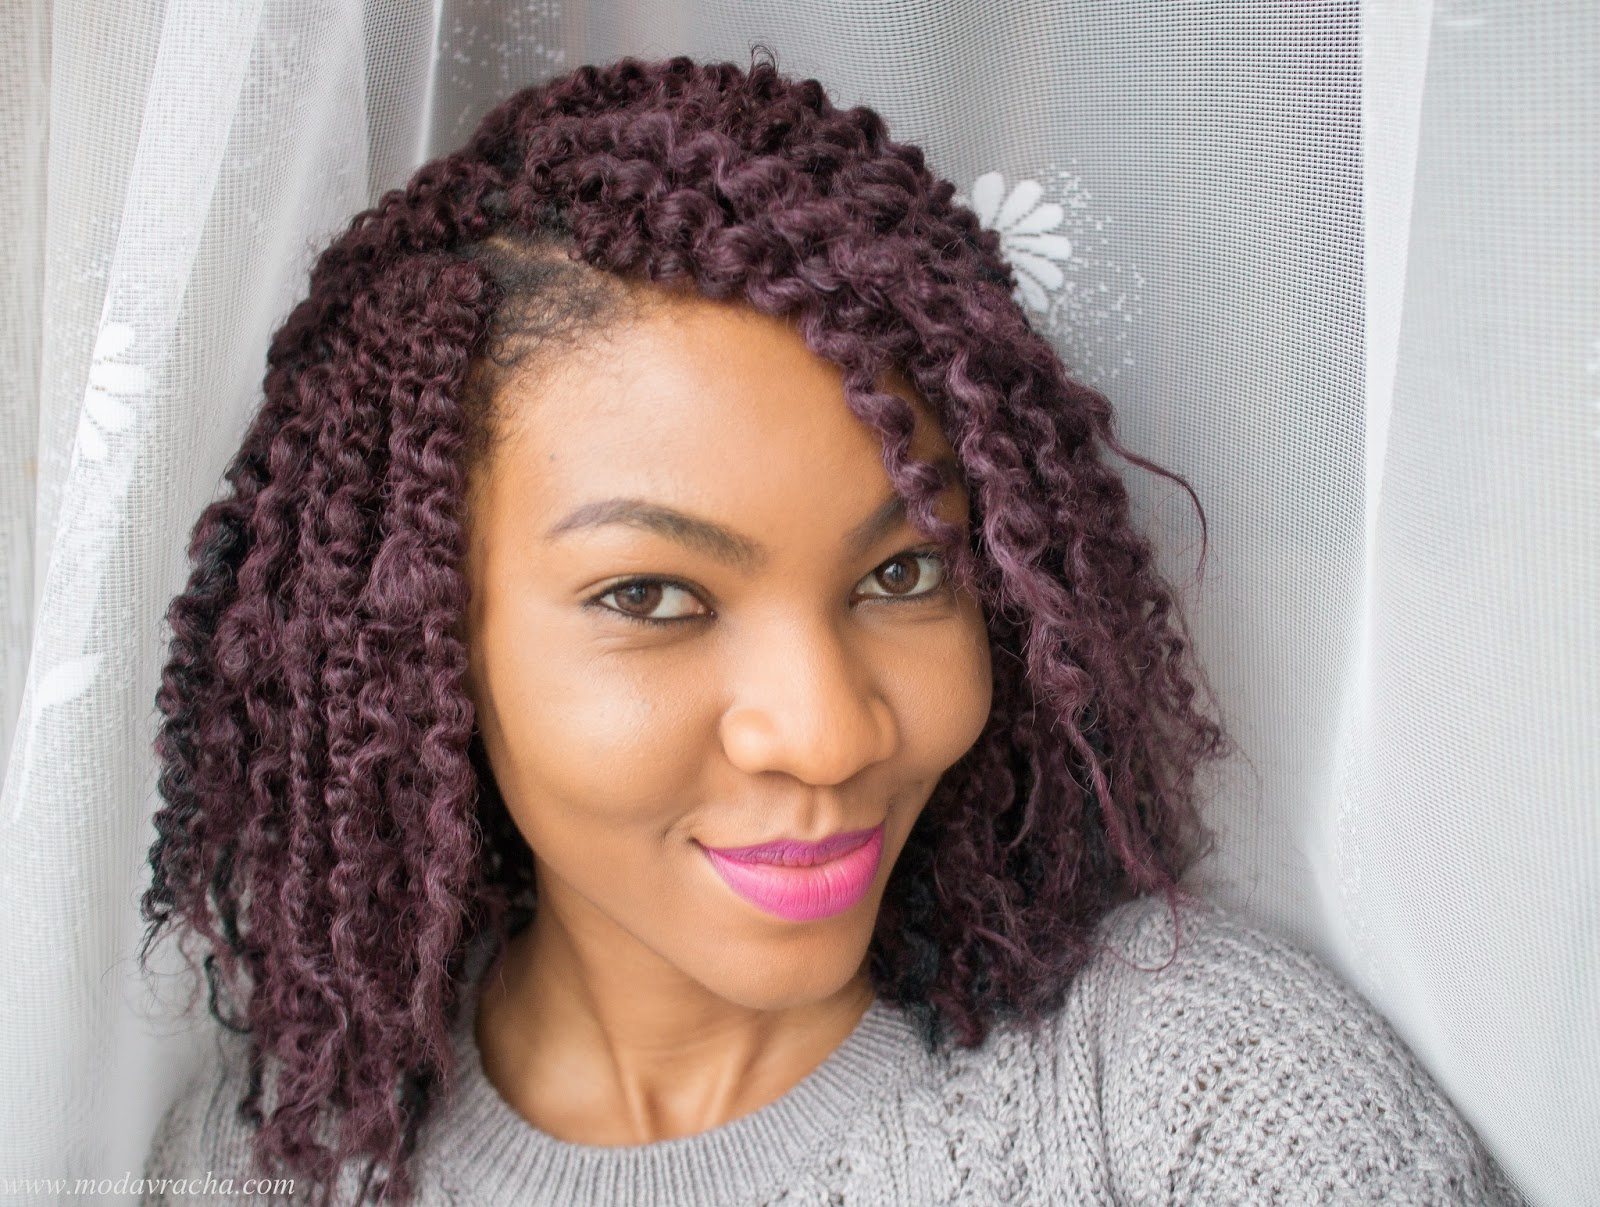 Kinky Twist Crochet Hair Styles : Modavracha crochet braids hairstyle with kinky bulk hair.